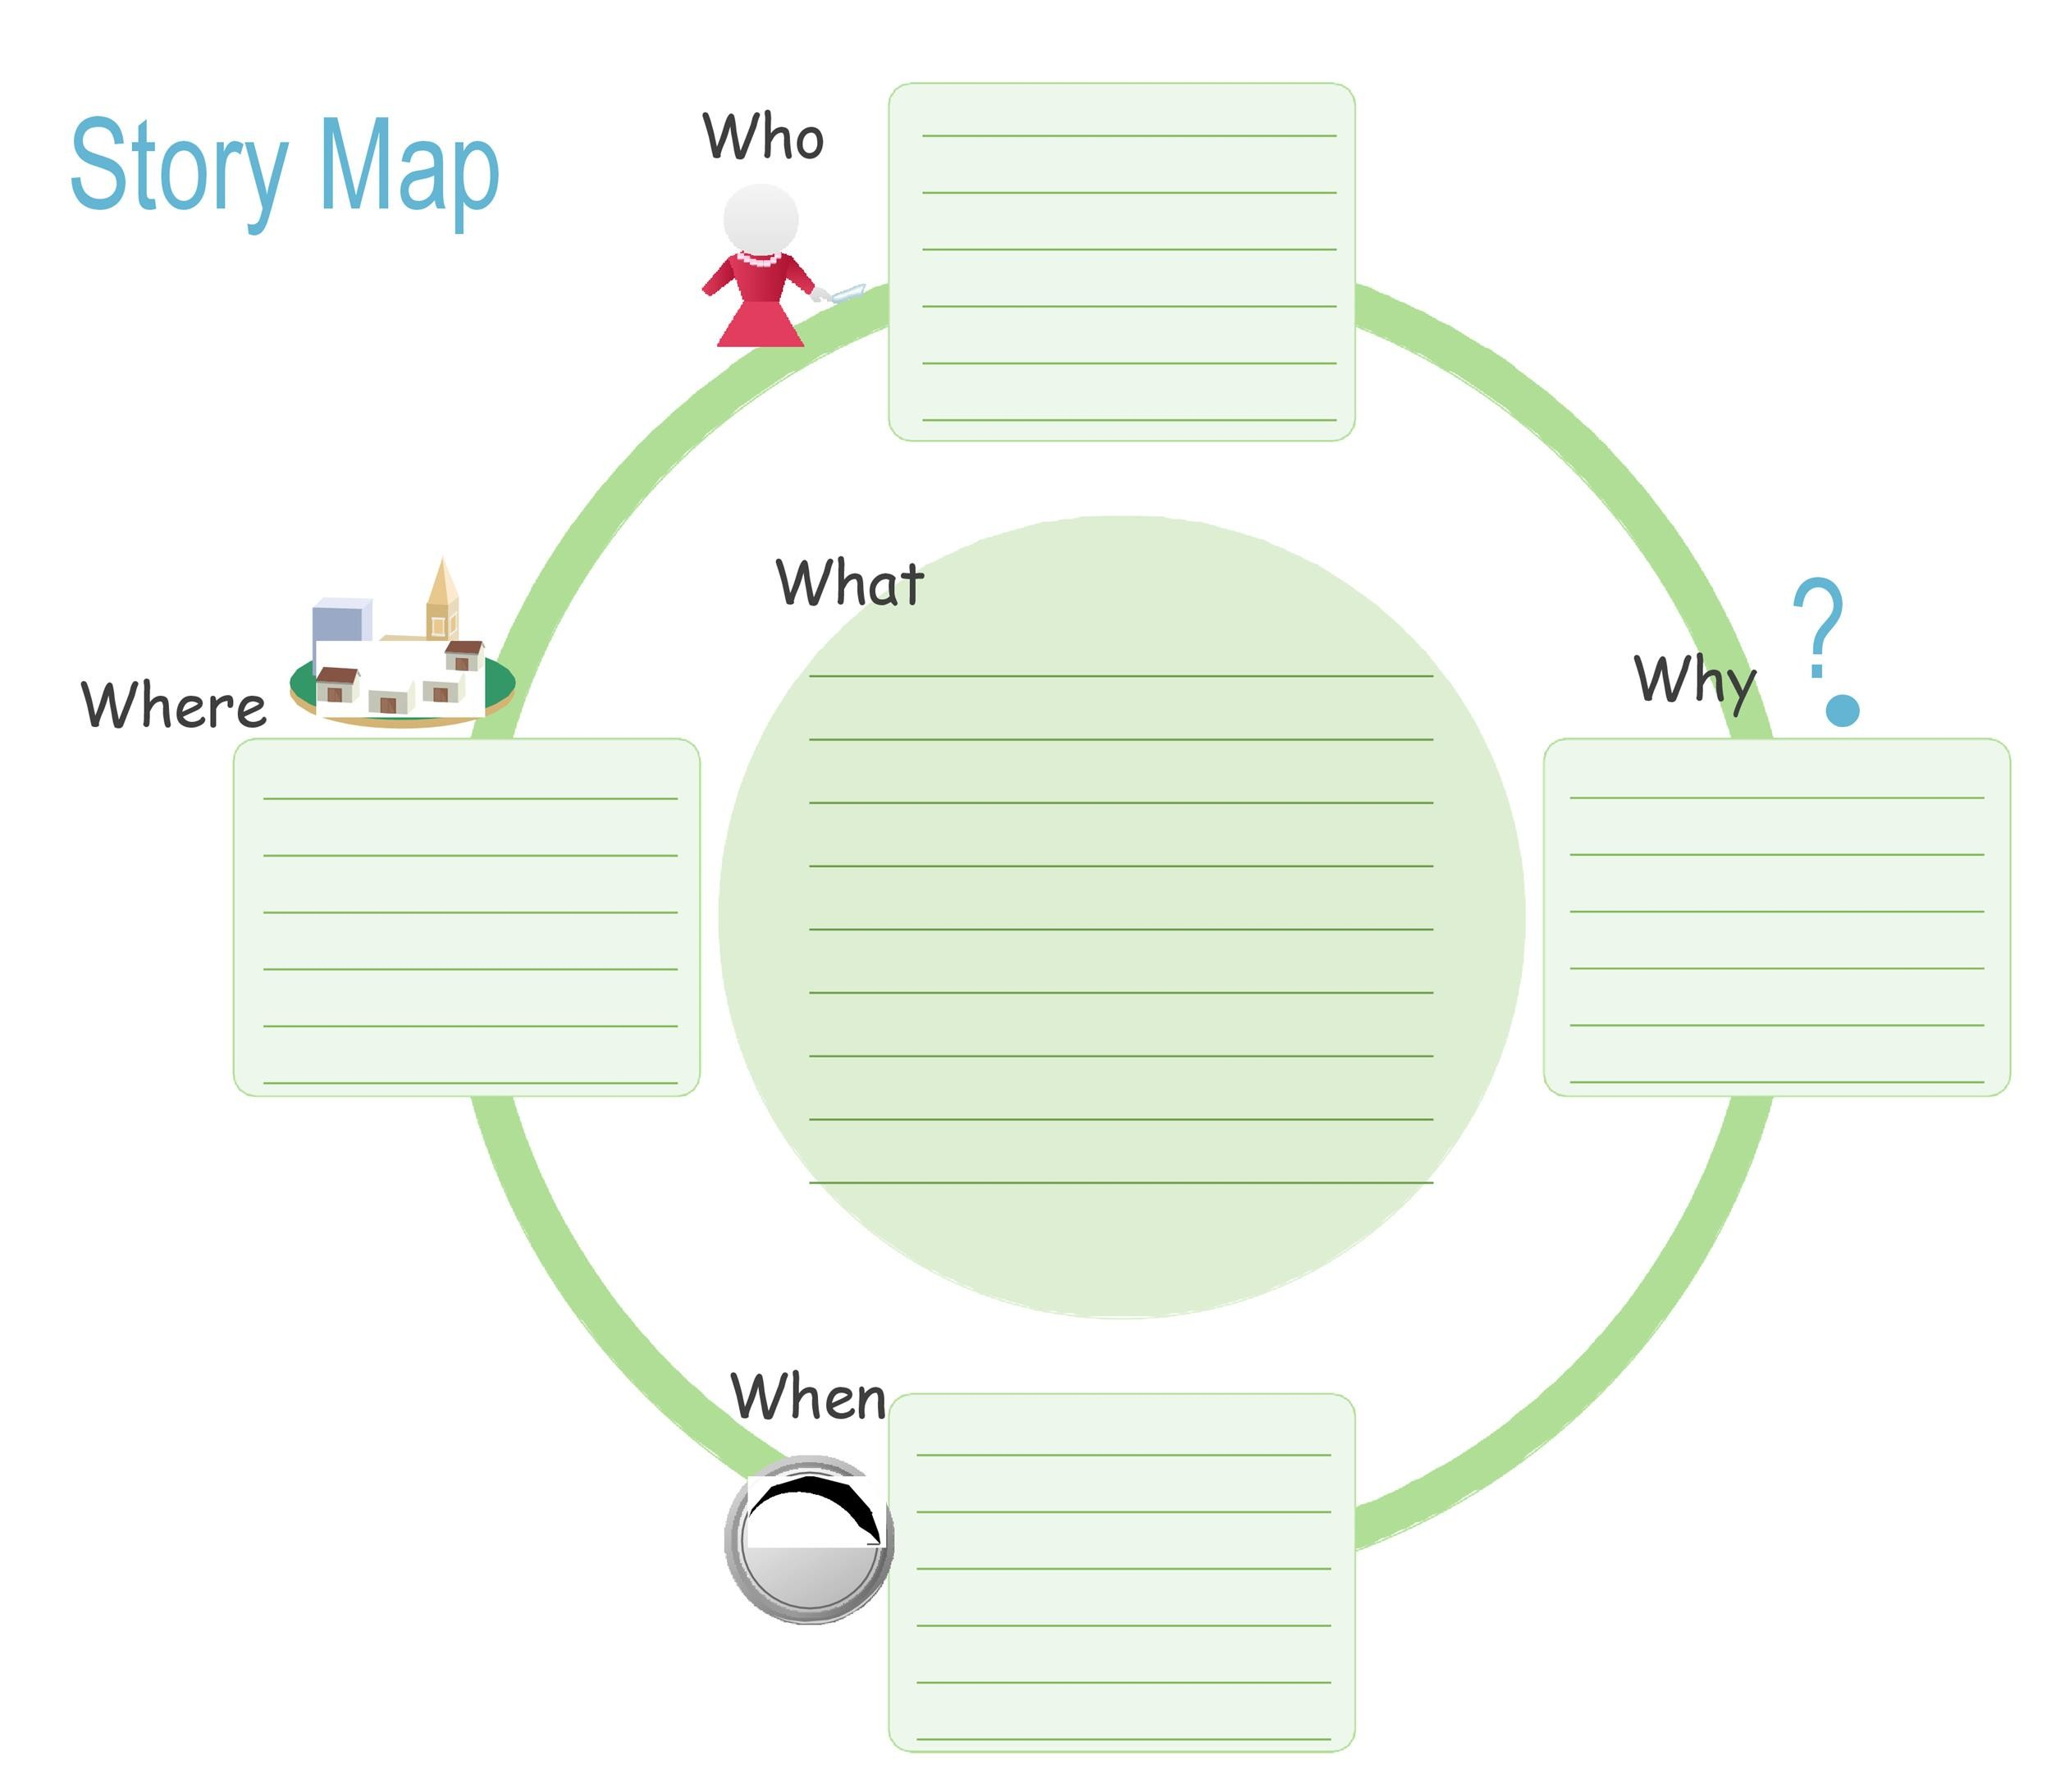 photograph regarding Story Map Template Printable named 41 Cost-free Printable Tale Map Templates [PDF / Term] ᐅ